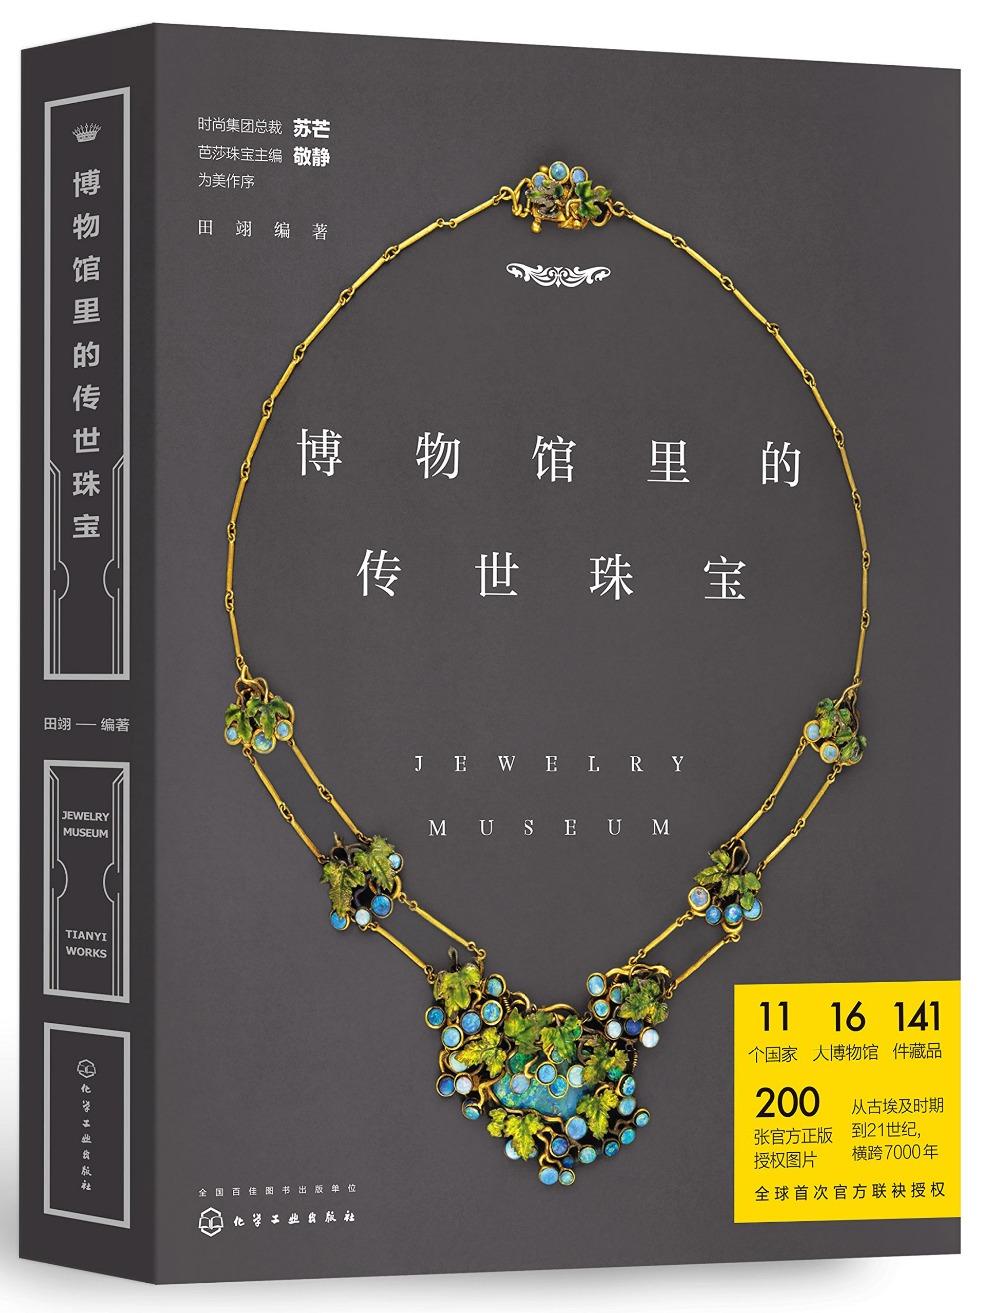 Heritage Jewelry in Museum Jewelry Design Enthusiasts Reference Appreciation Drawing Painting Book in ChineseHeritage Jewelry in Museum Jewelry Design Enthusiasts Reference Appreciation Drawing Painting Book in Chinese